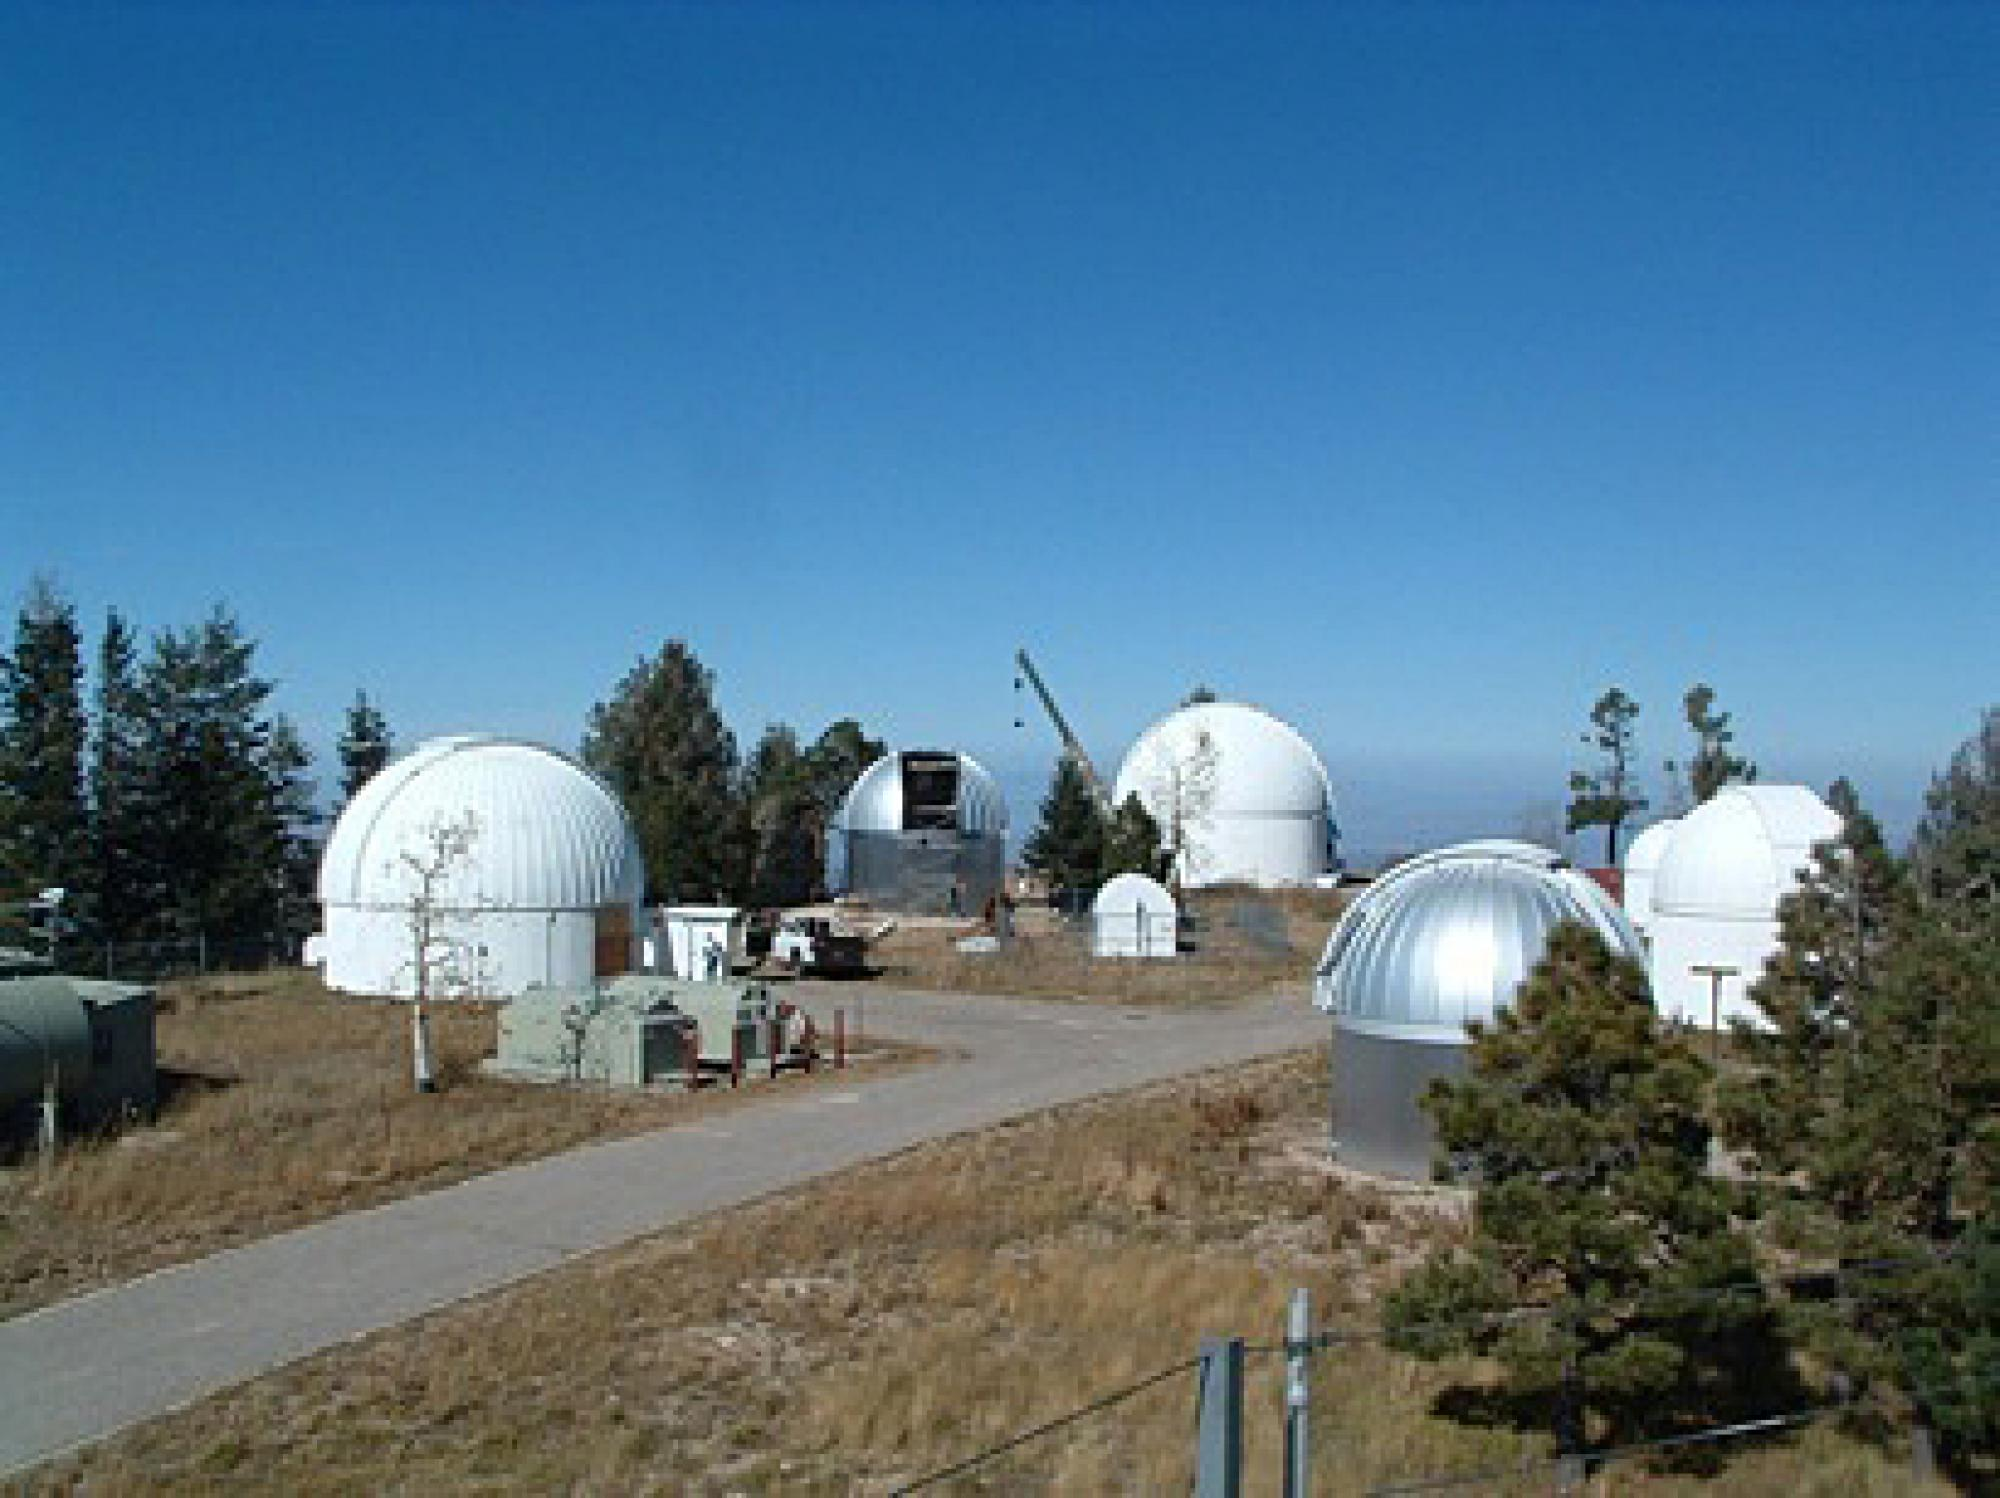 Overview of Steward Observatory's Mount Lemmon Observatory. The 24-inch SkyCenter telescope used for  public evening observations is at left. The silver-colored dome will house the Catalina Sky Survey's refurbished 40-inch telescope by summer. The white d